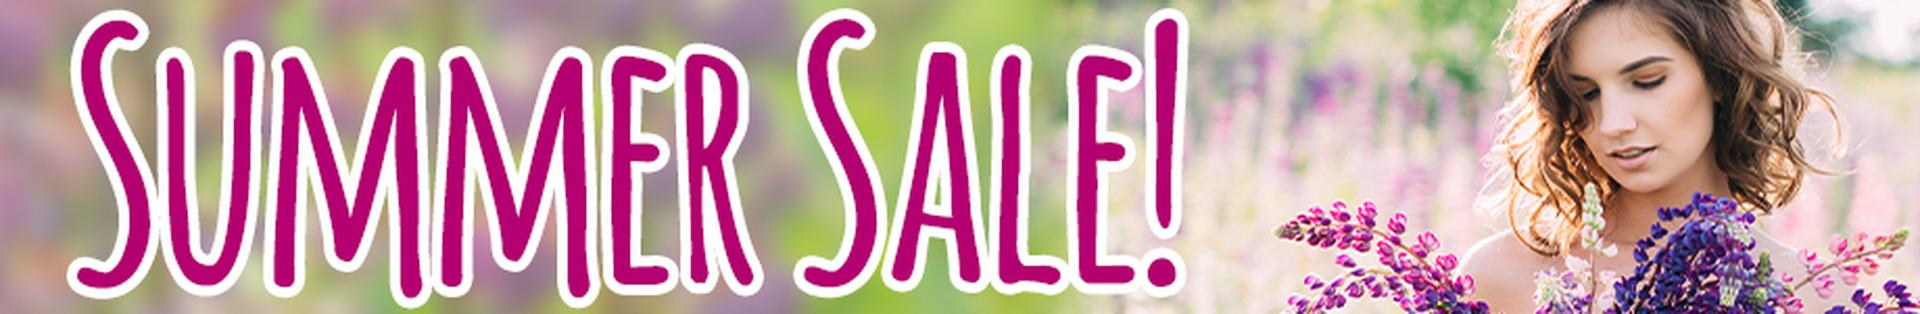 le_listing_banner_summersale_072020_xs_nl